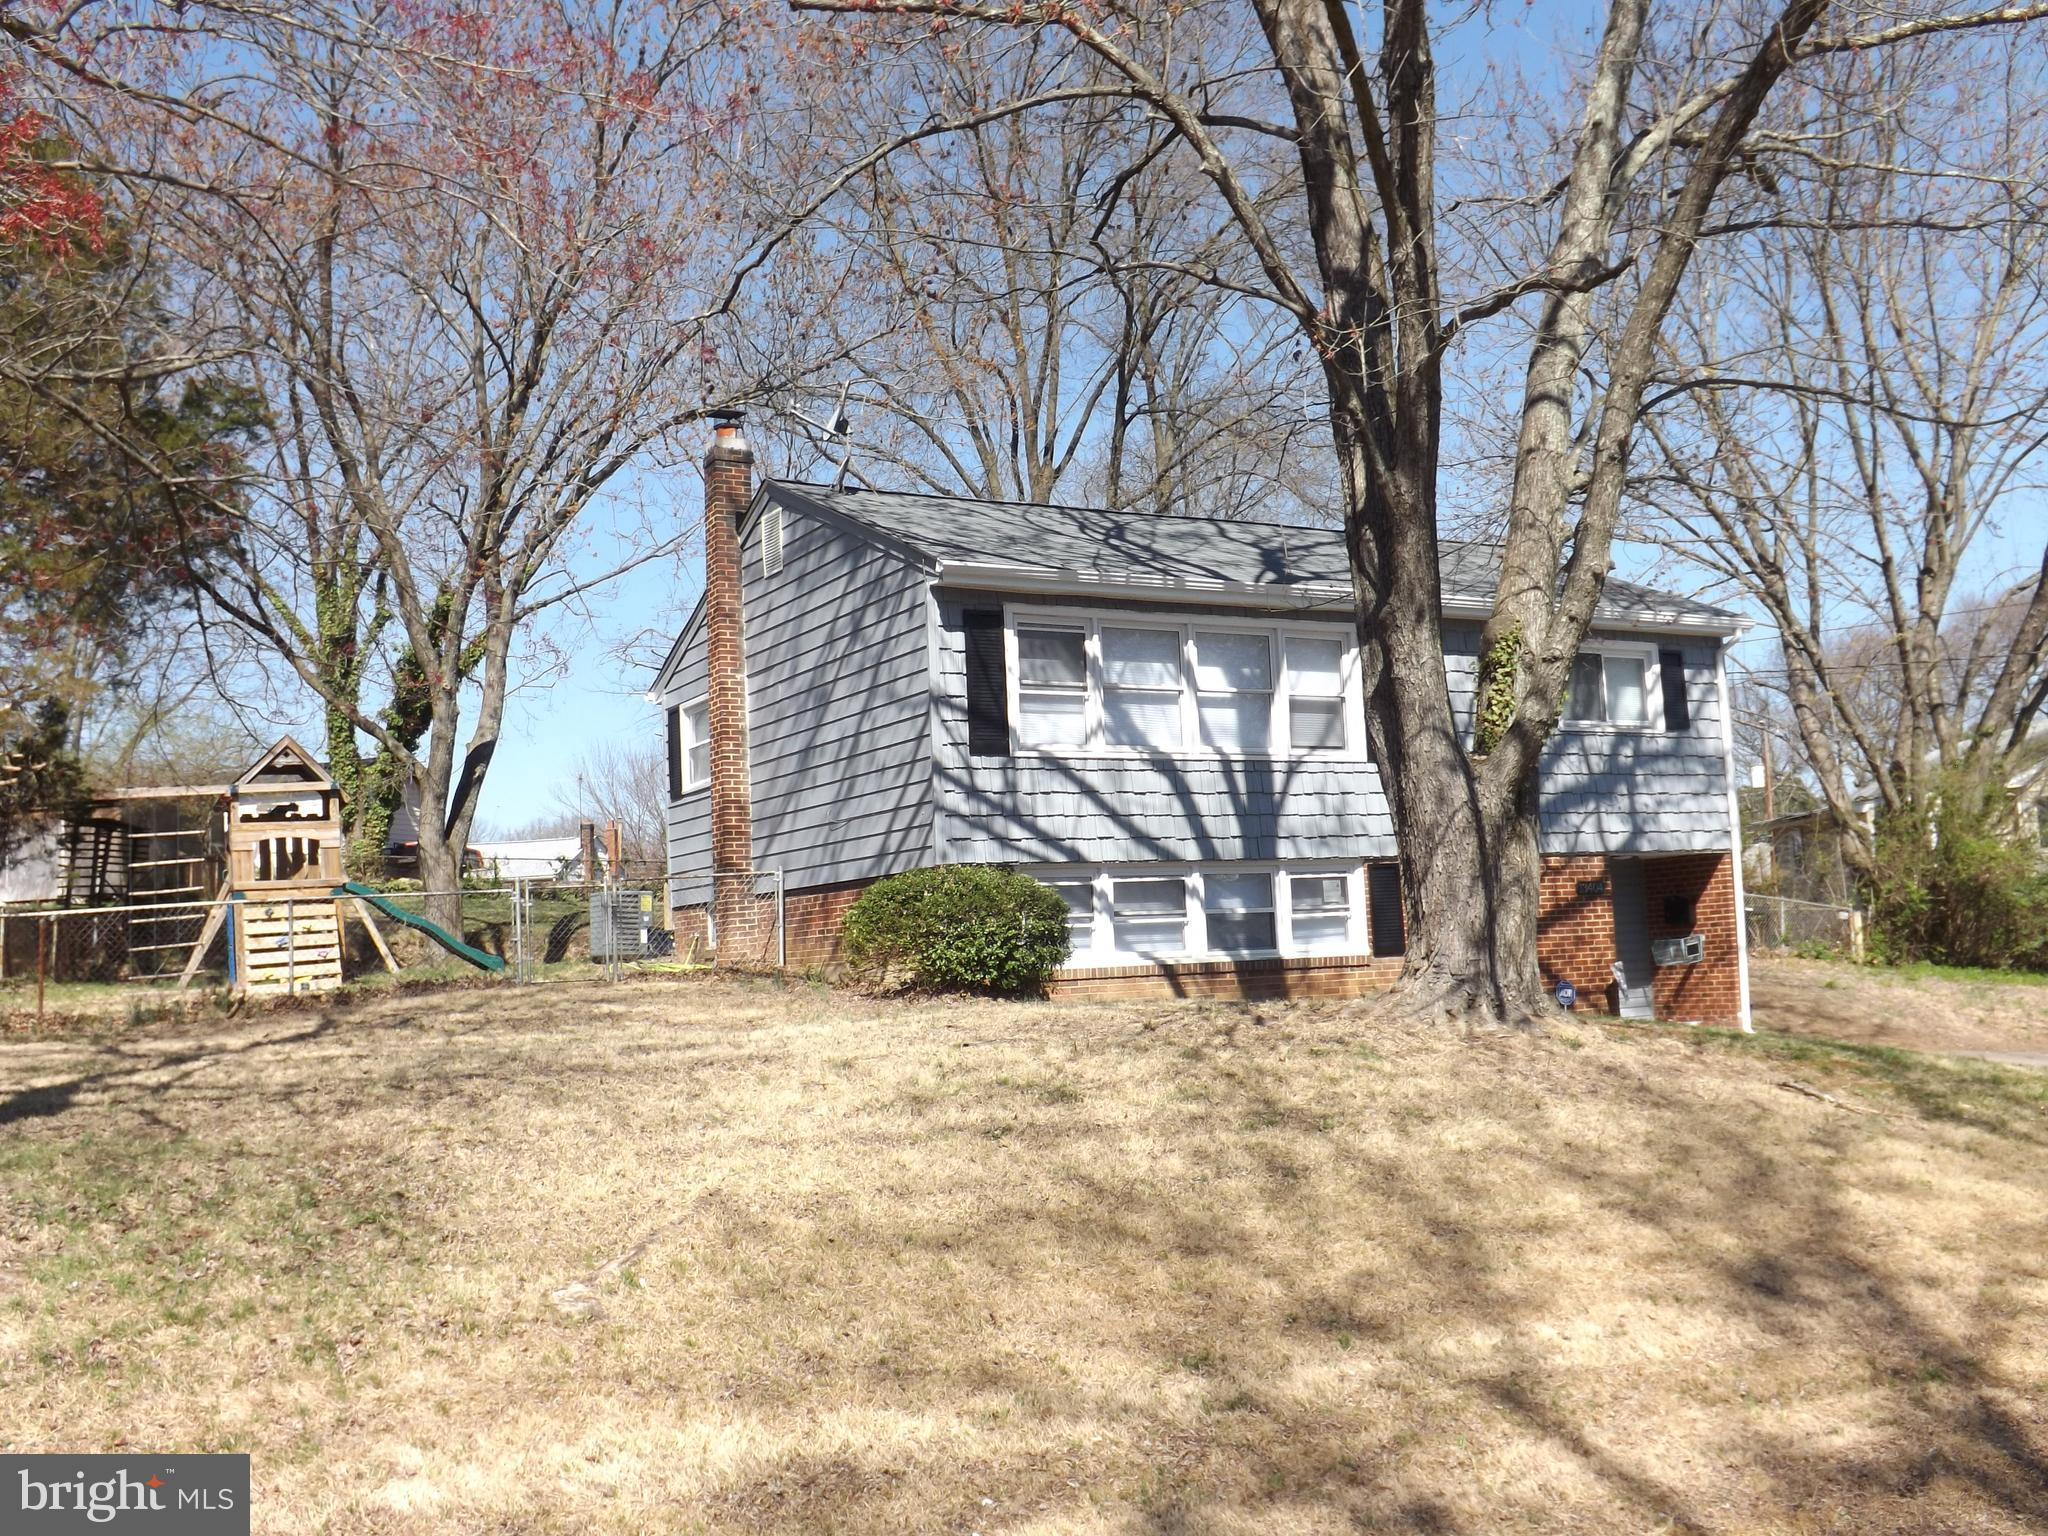 Cute Rambler - 3/4 bedrooms 2 full baths - 4th room could be used for as office/den or 4th bedroom (NTC) Large fenced in yard. NEW ROOF - Outside just painted - New flooring throughout - Freshly painted - Large deck for entertaining. 2 family rooms - Updated lighting. Come make this your new home